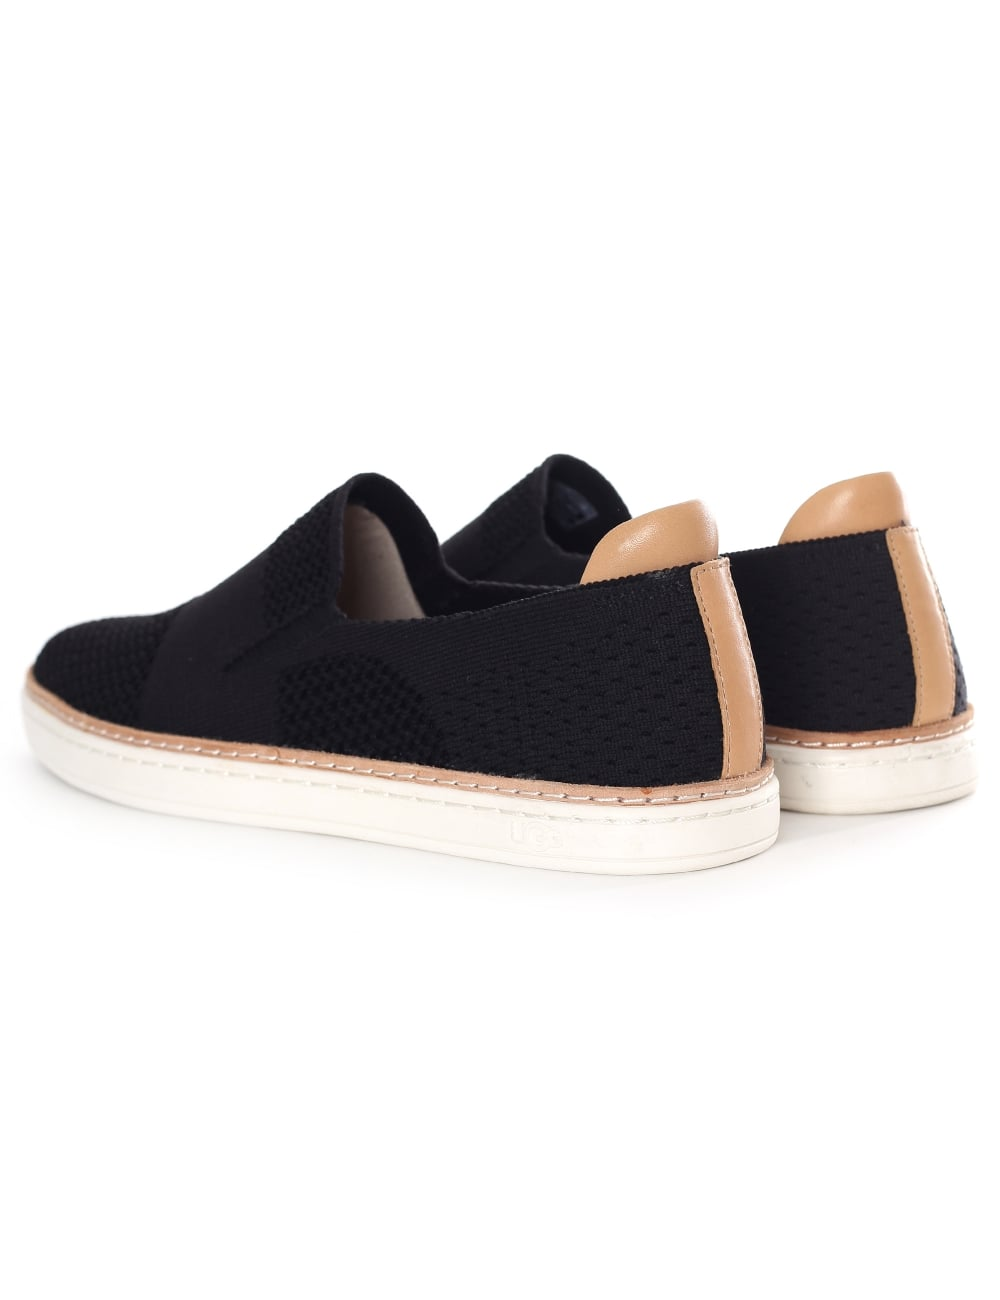 UGG - SAMMY IN BLACK RIB KNIT